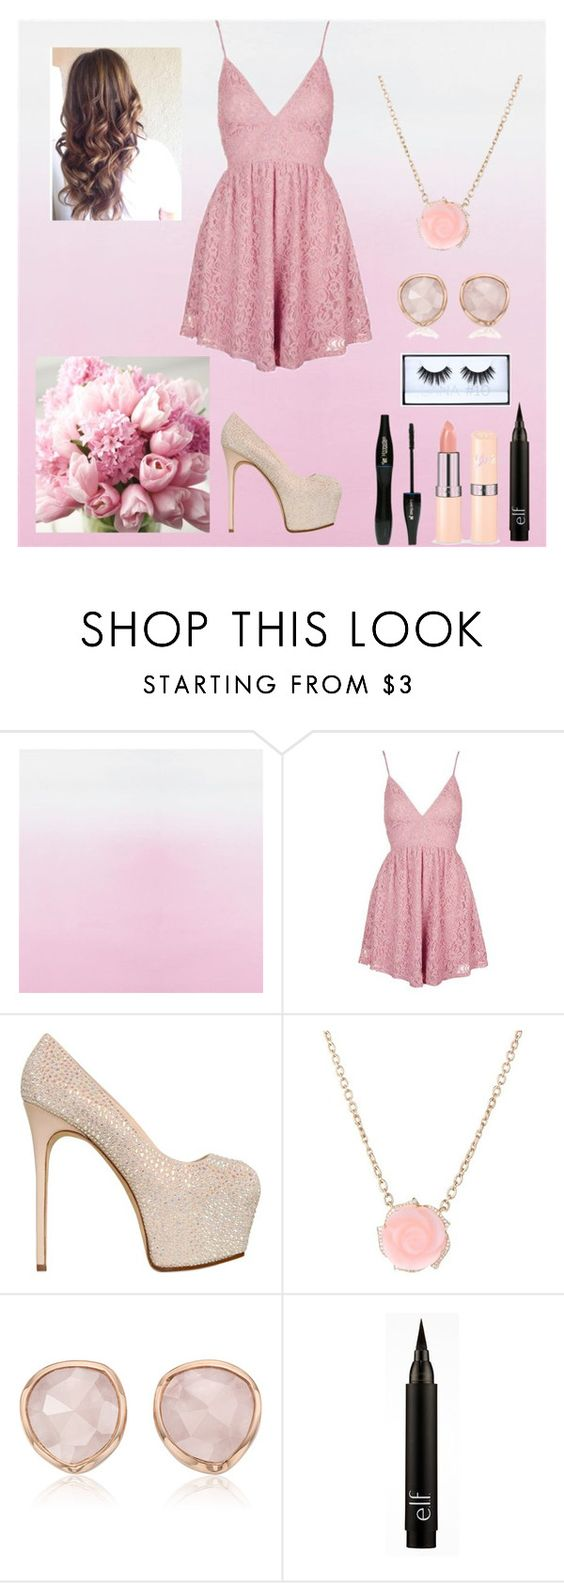 """LOVE IT"" by misacute123 ❤ liked on Polyvore featuring Topshop, Giuseppe Zanotti, Irene Neuwirth, Monica Vinader, Lancôme, Huda Beauty and LoveIt"